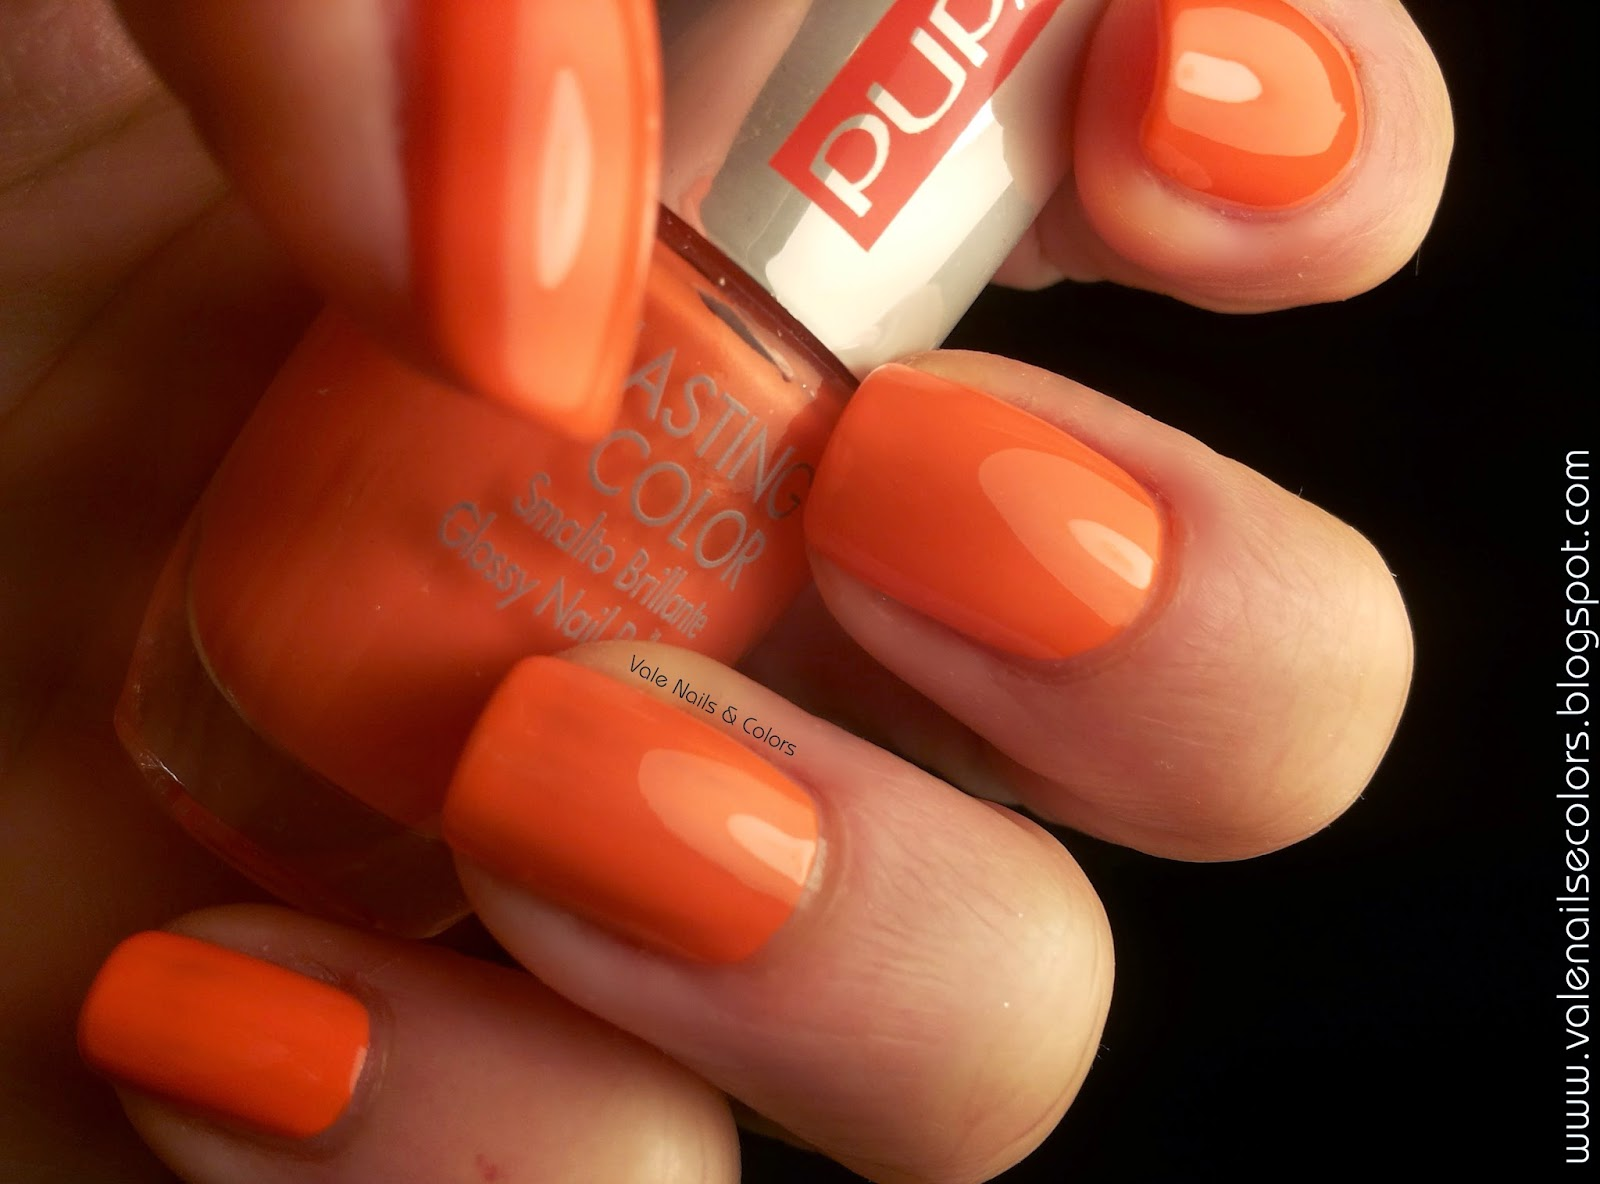 Pupa 515 Spicy Orange Arancio